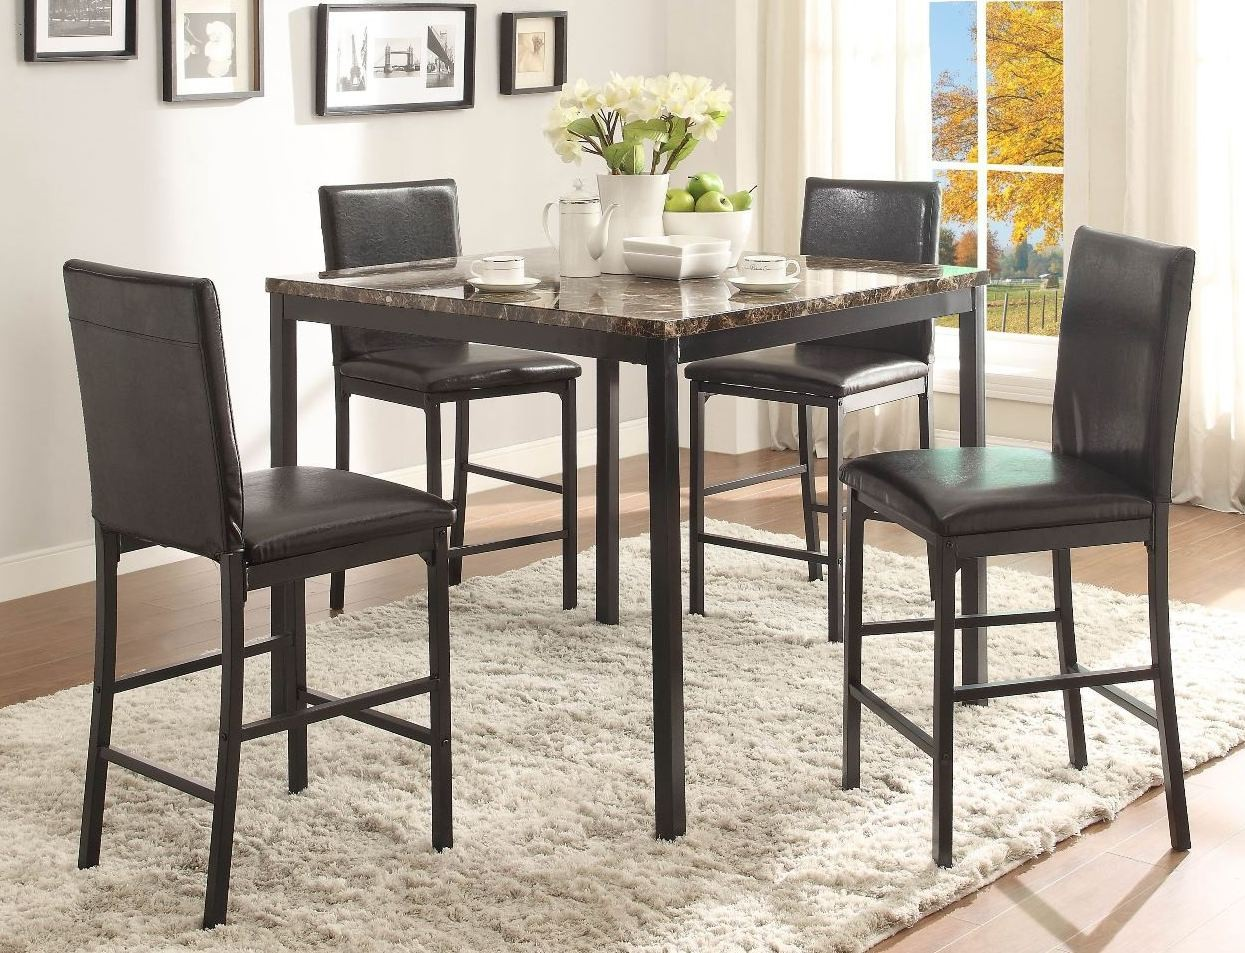 kohls dining chairs retro kids table and tempe counter height room set from homelegance